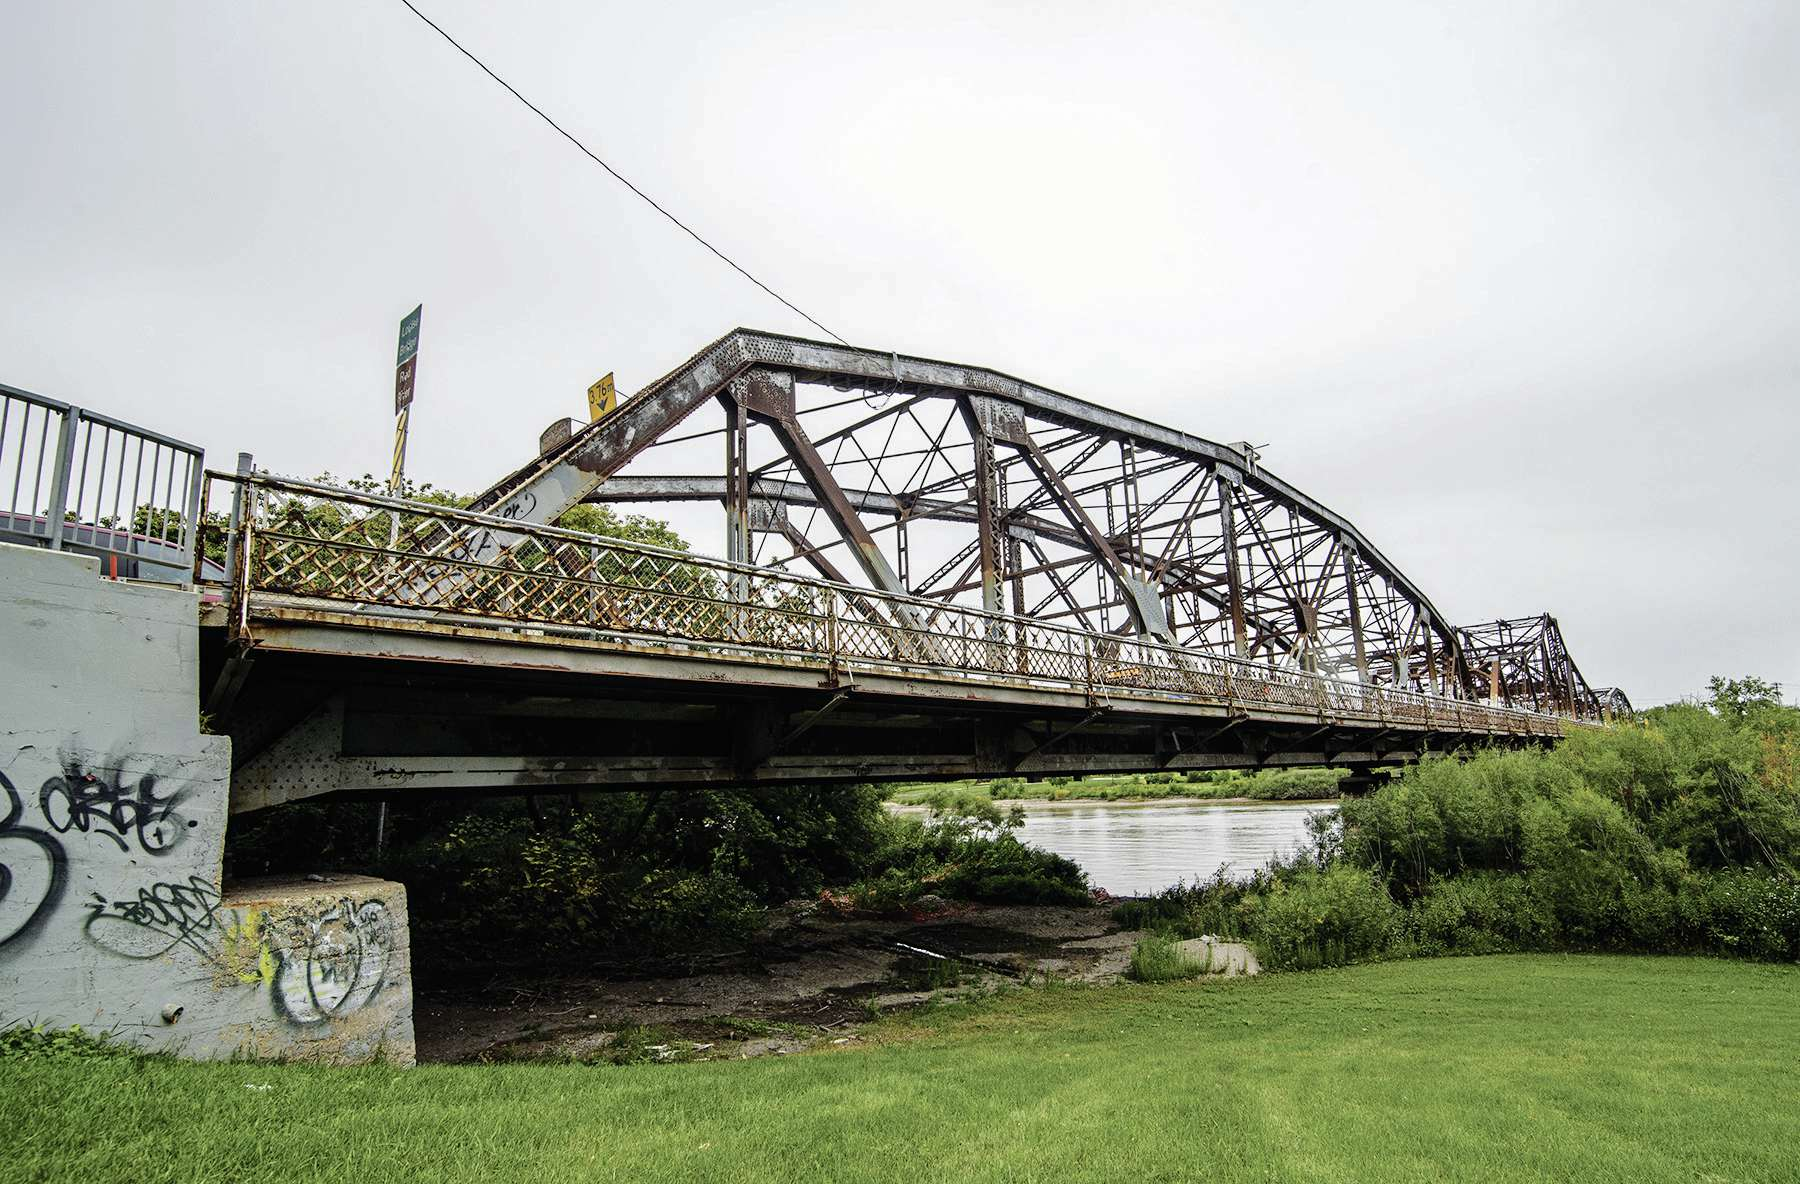 The building of the original Louise Bridge in 1880 (present-day version is pictured) helped facilitate the settlement of what was to become Elmwood.